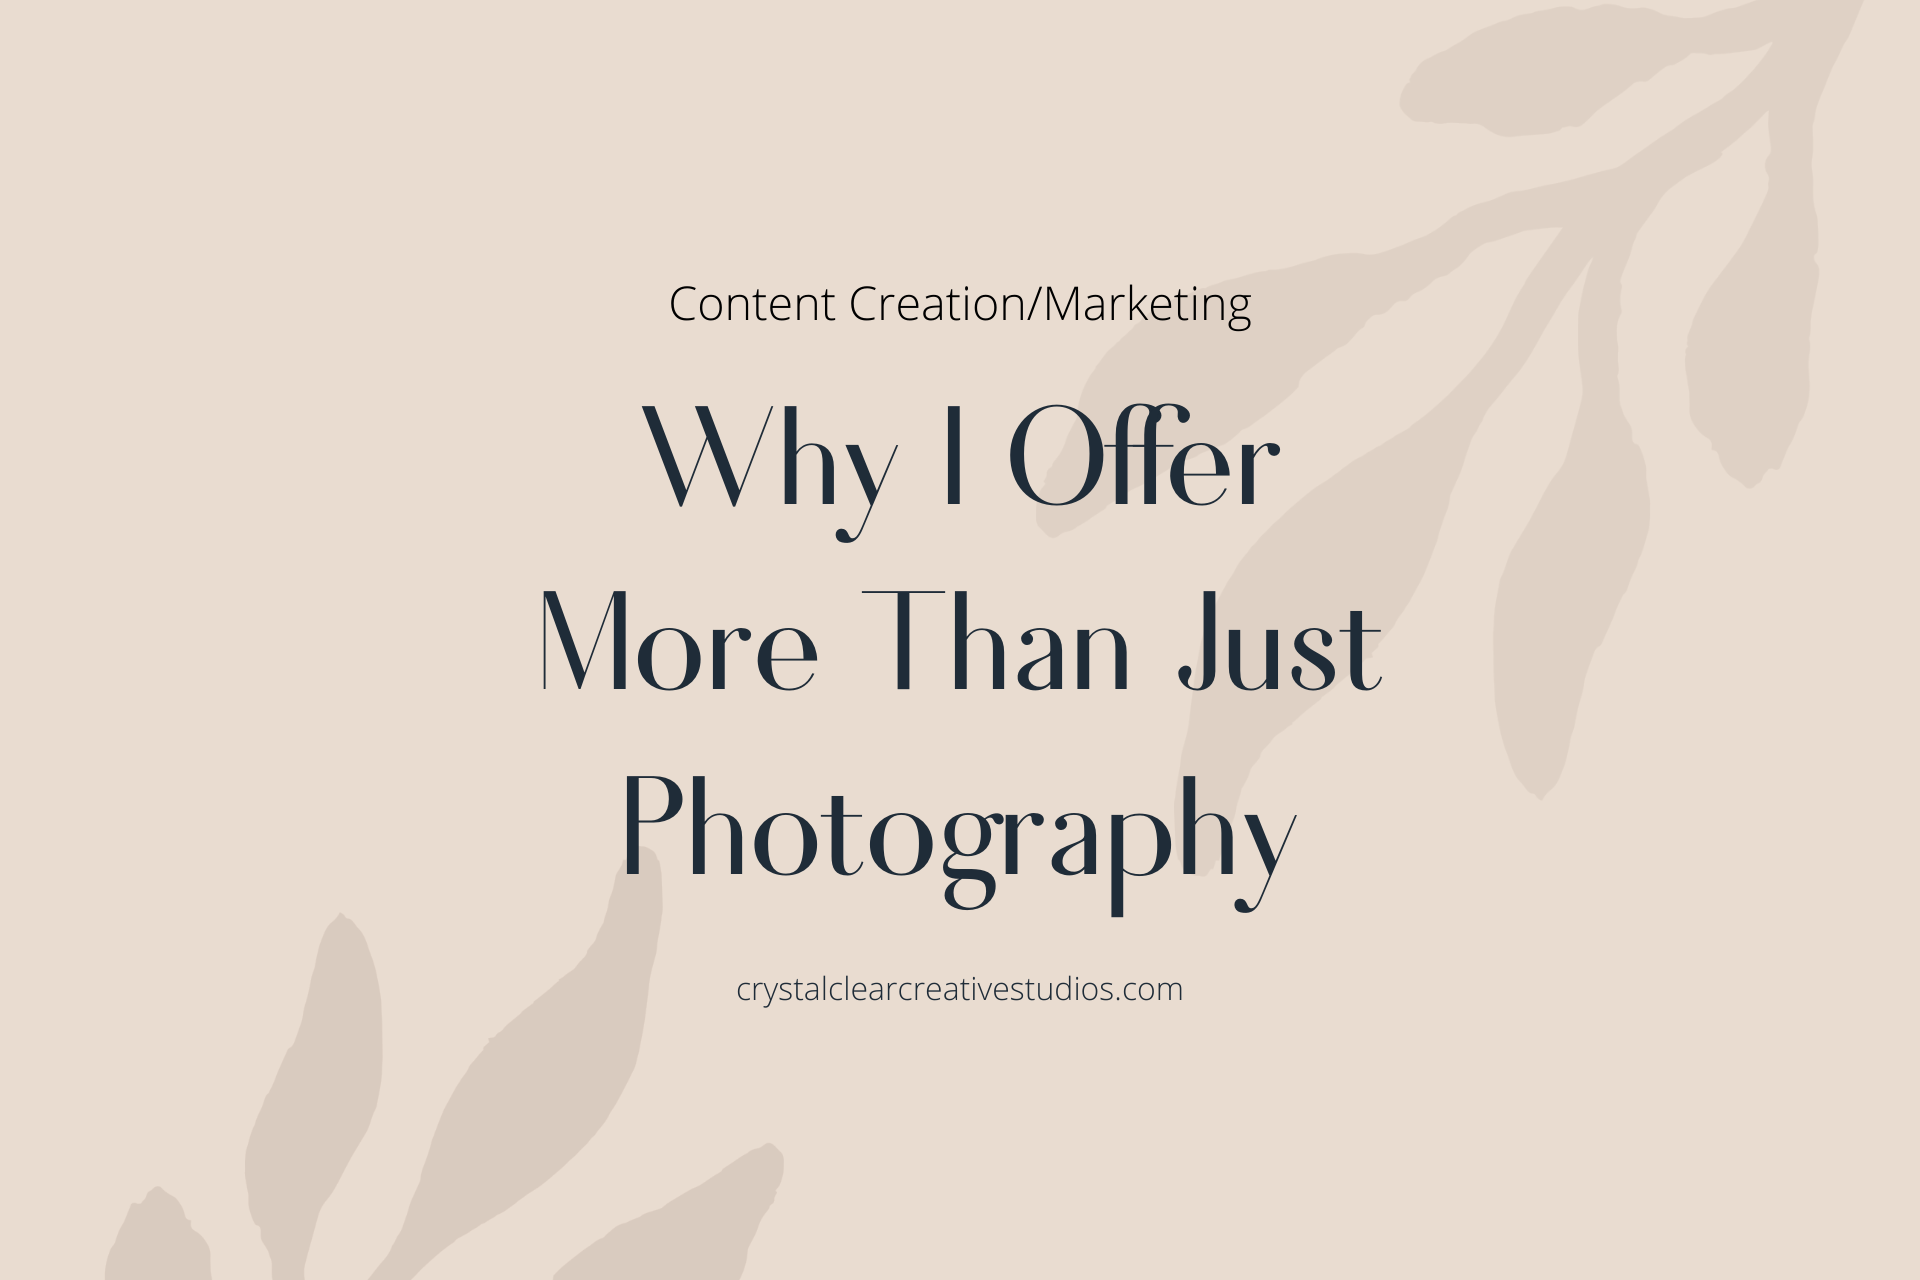 Why I Offer More Than Just Photography